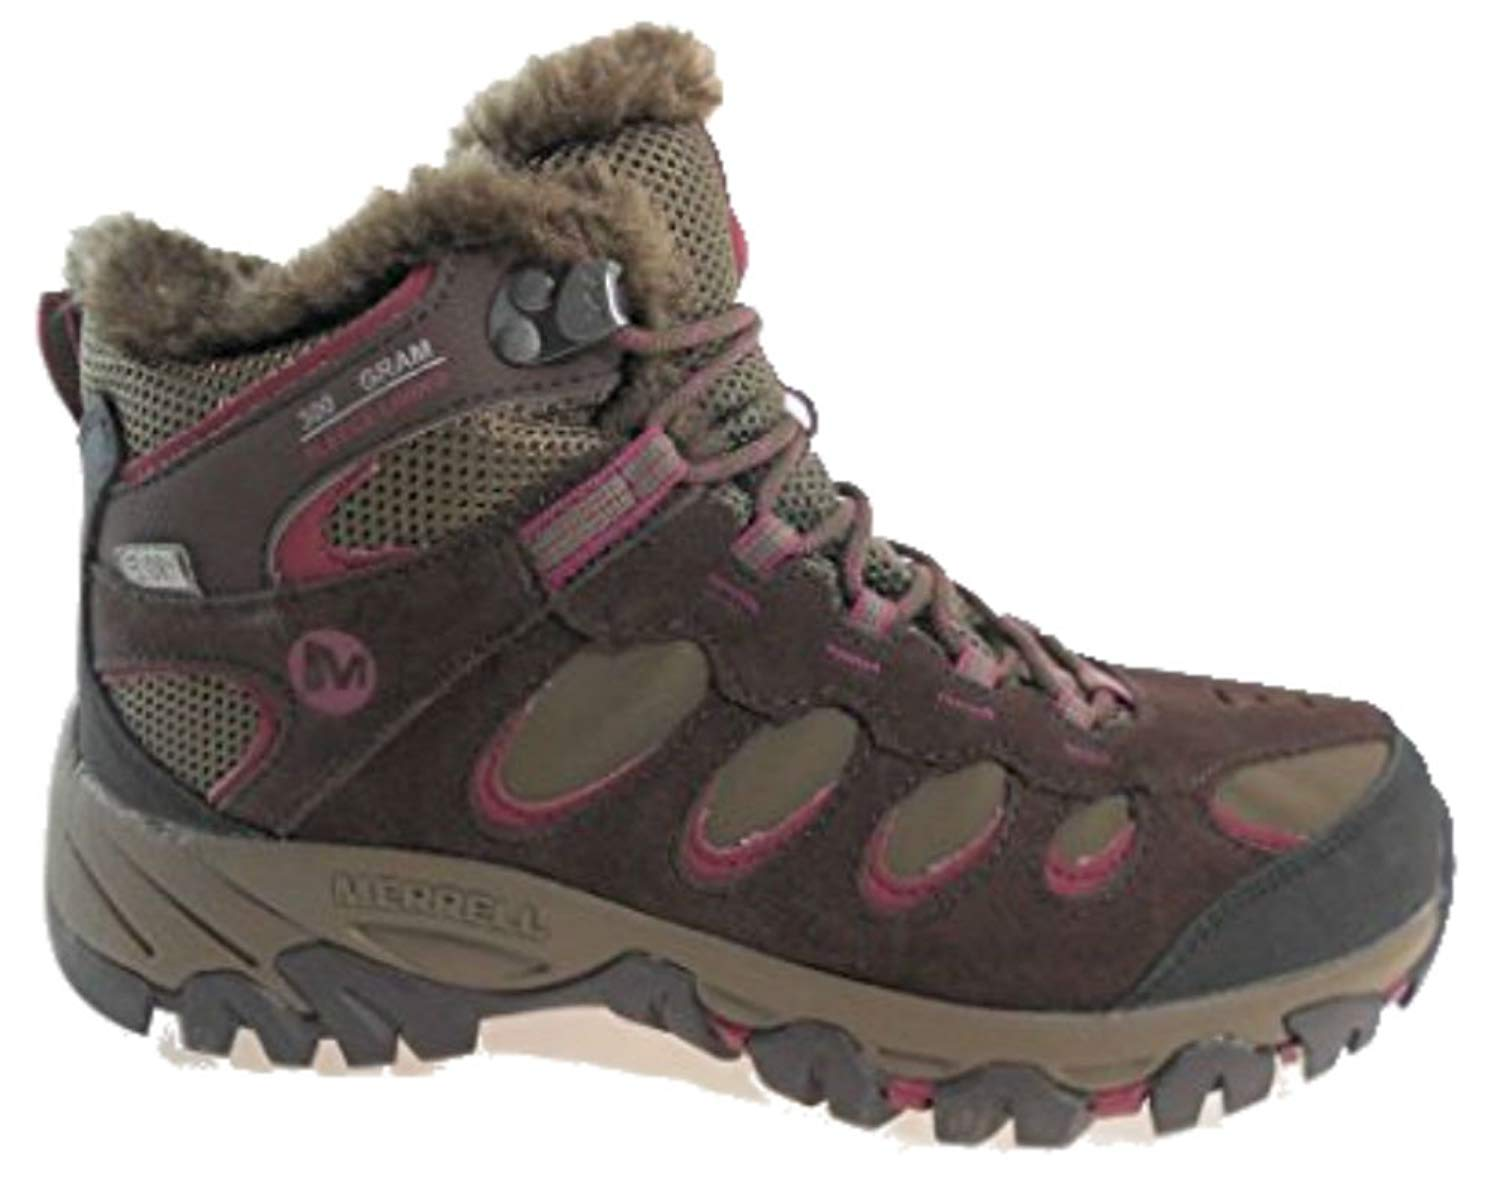 0599688967ed9 Buy Mens Merrell, Ridgepass wide width Hiking Shoes in Cheap Price ...